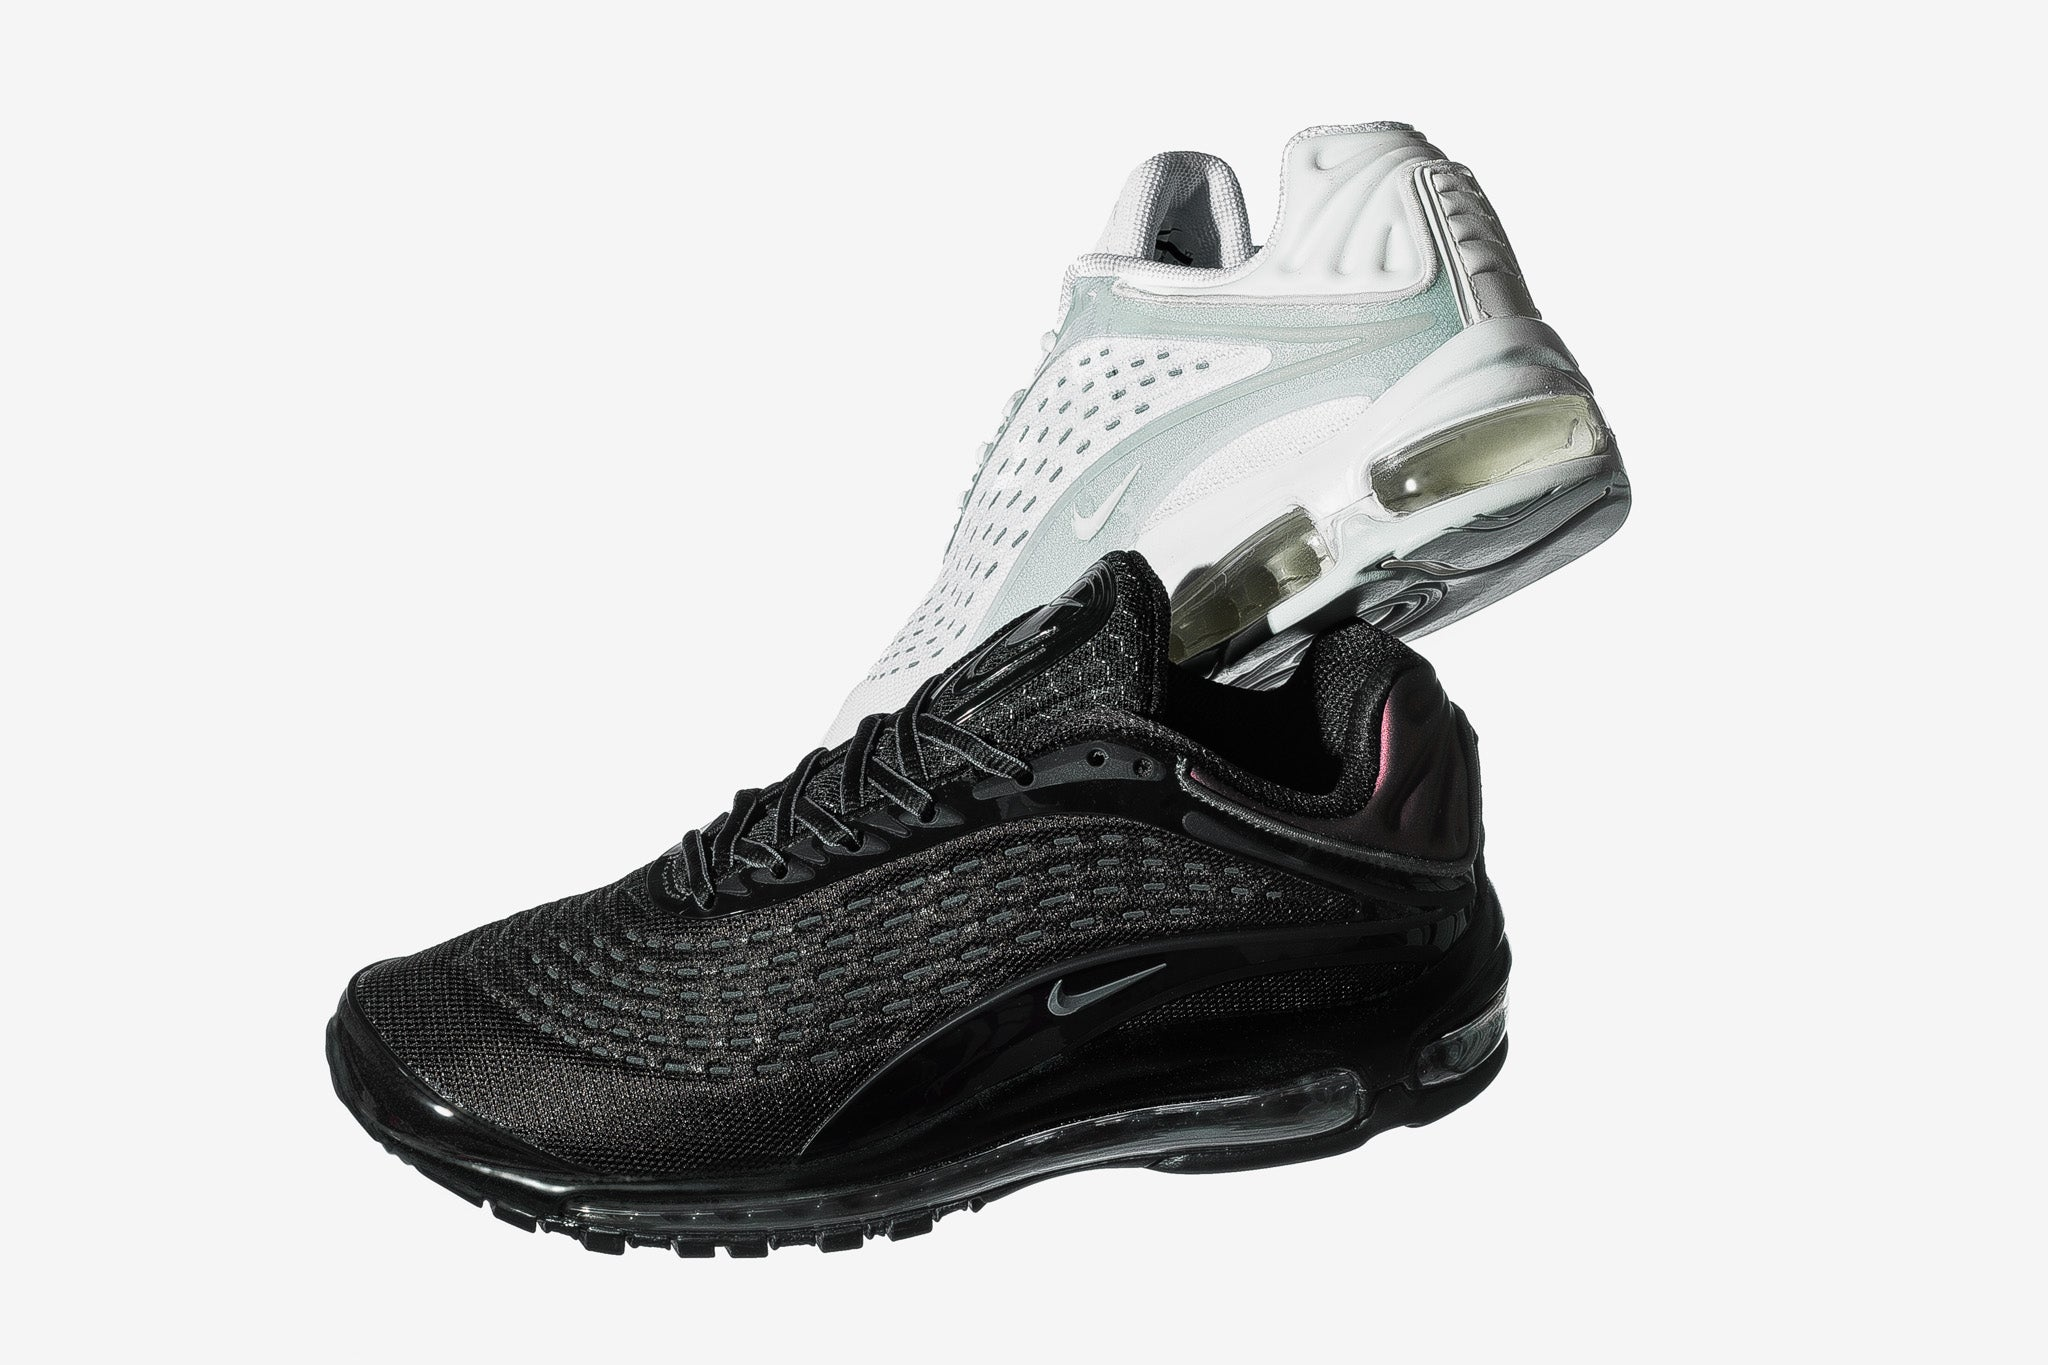 b5d4d2e515ce7a The Nike Air Max Deluxe